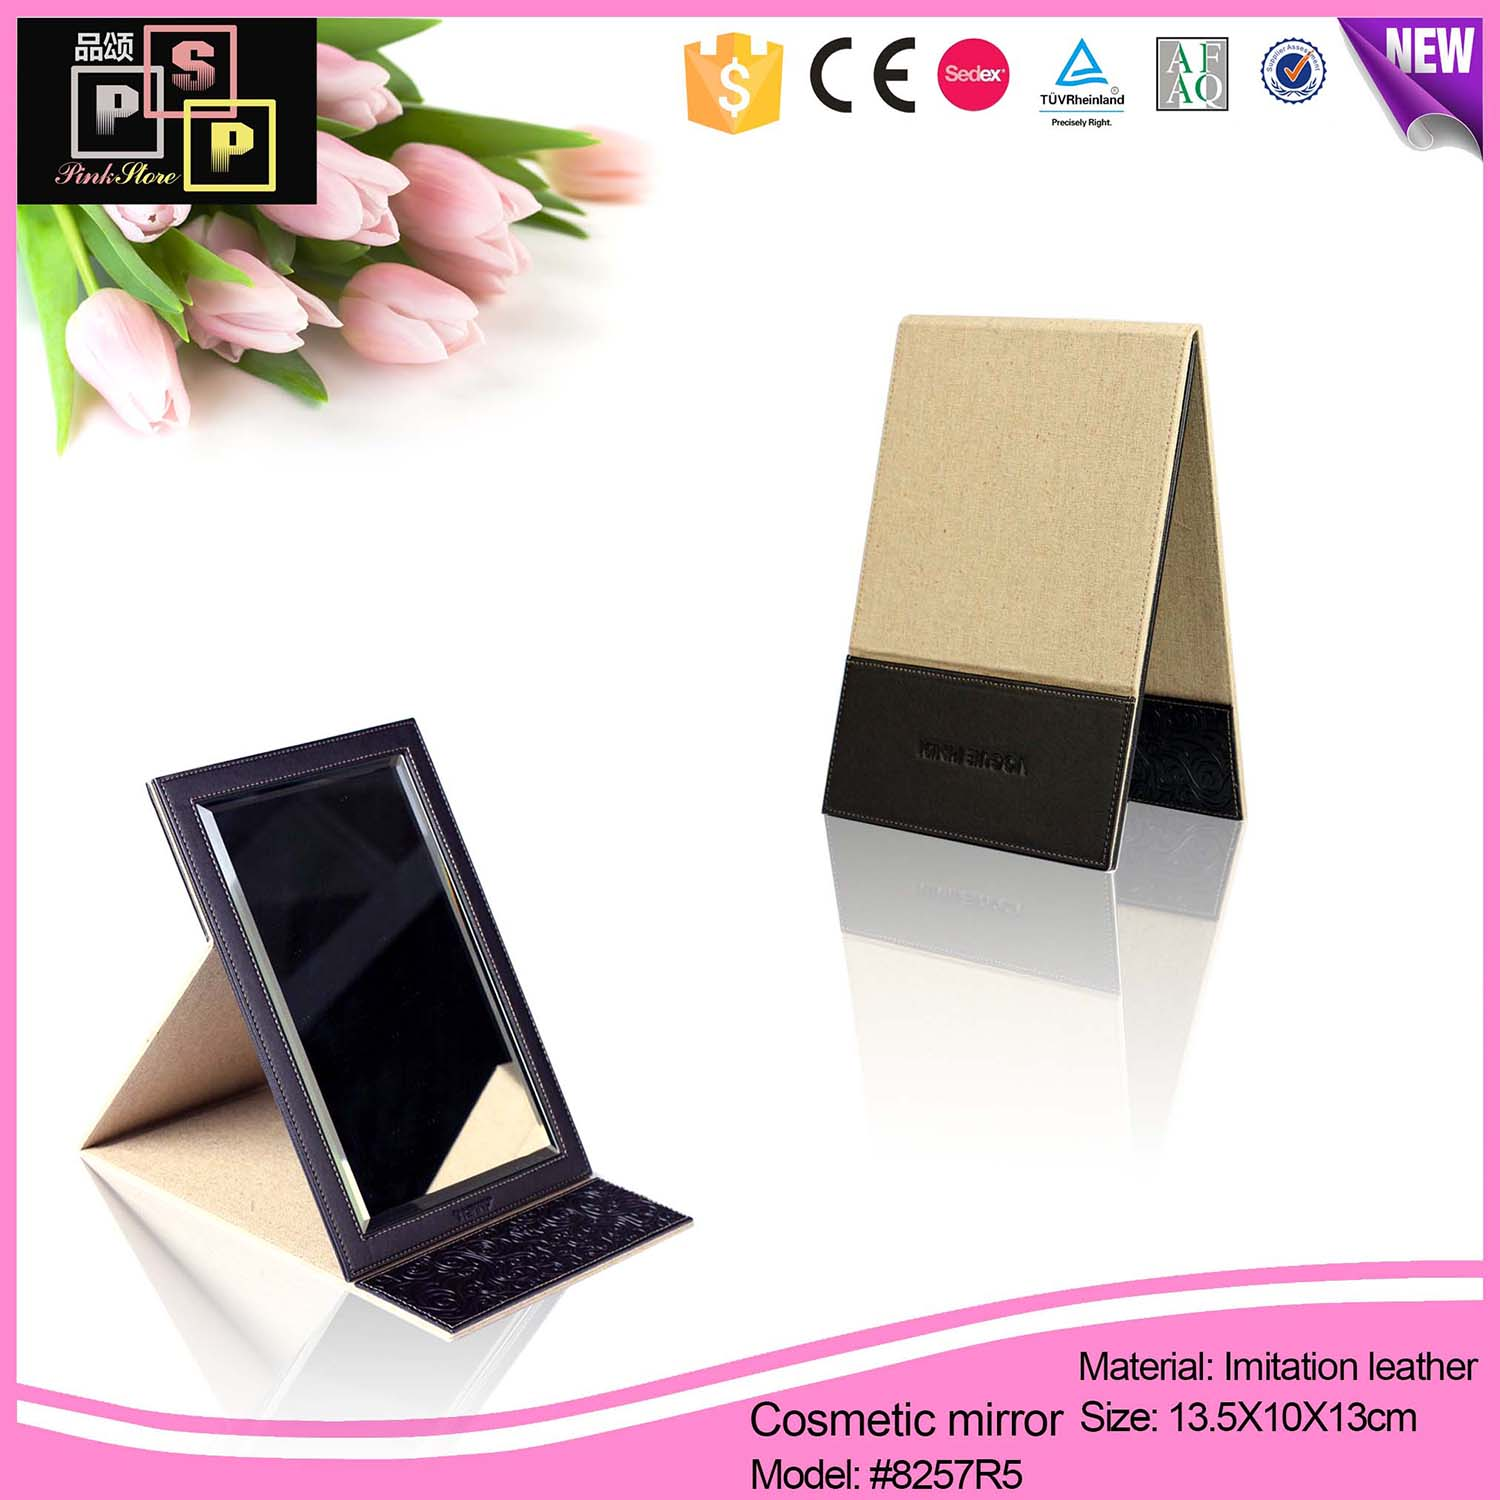 PU leather round mini mirror for promotion gift